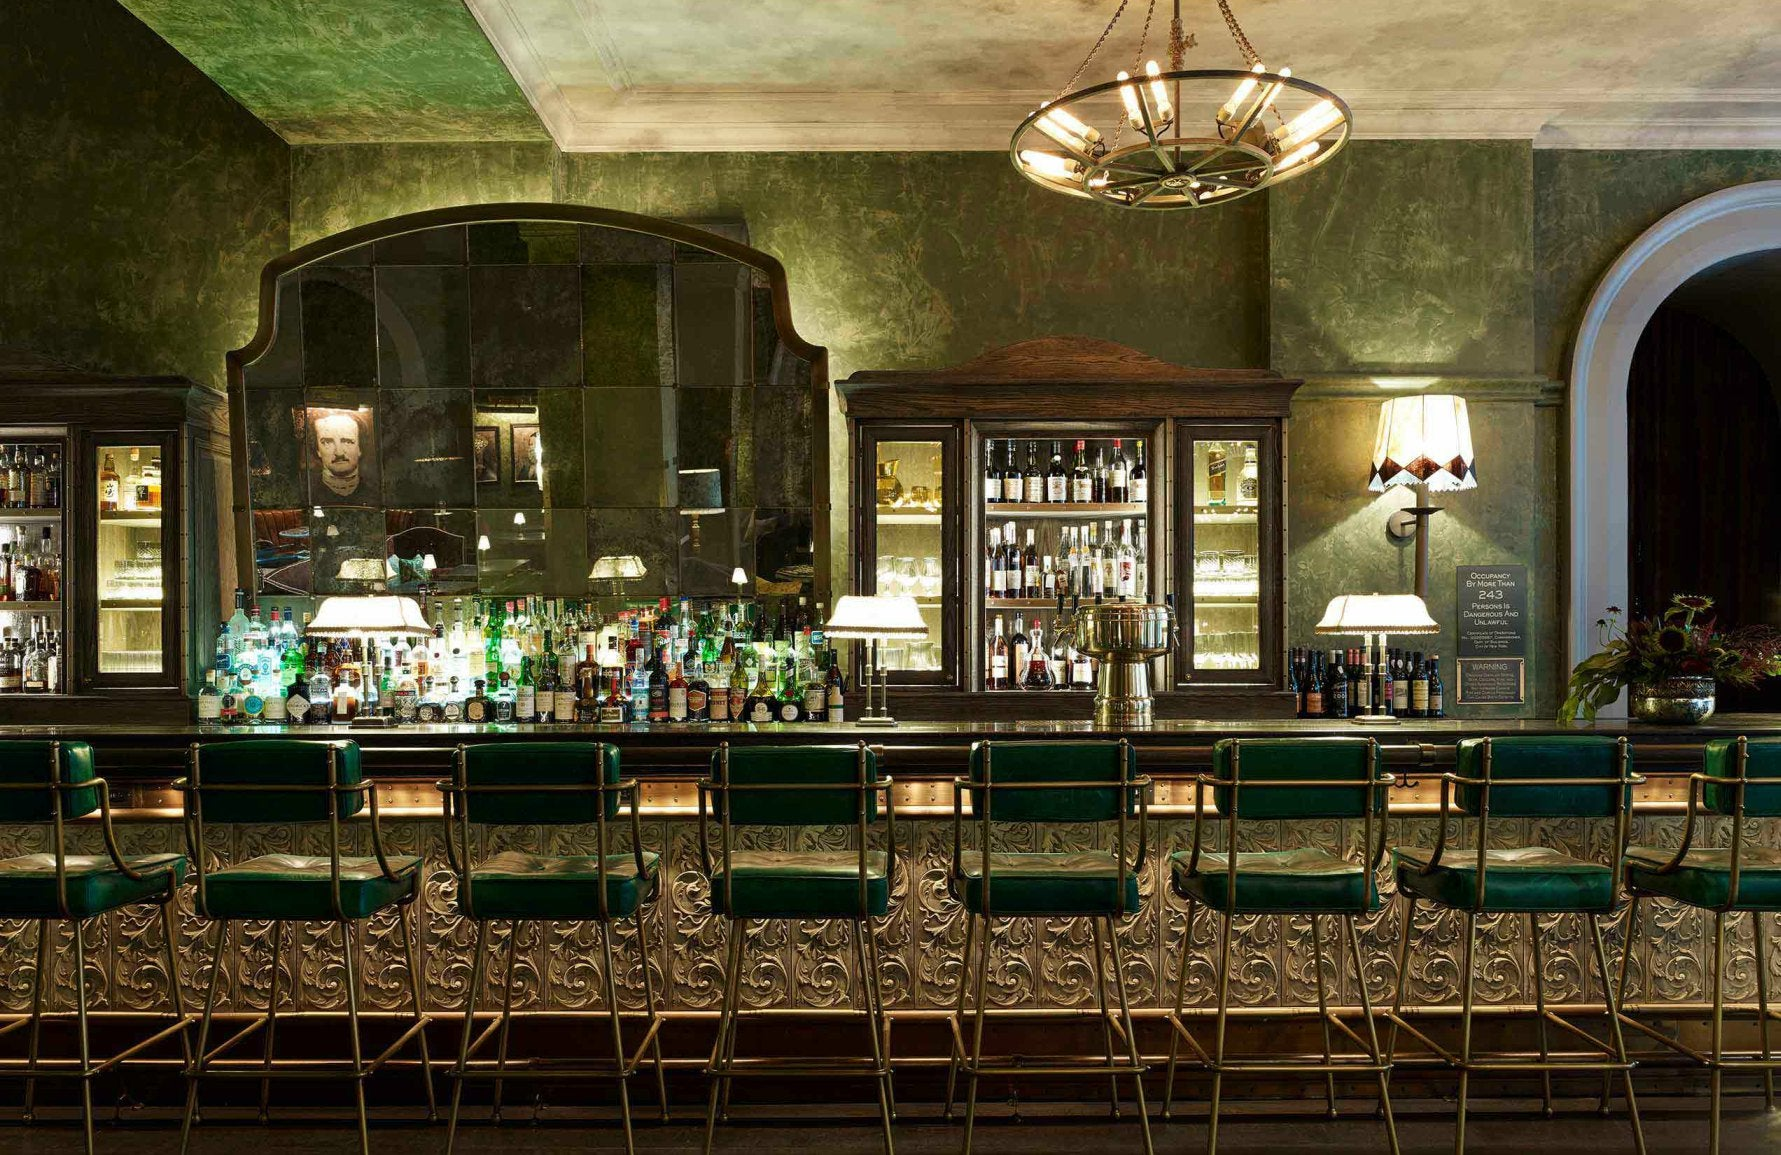 The Beekman Hotel New York | The Bar Room  | Martin Brudnizki Hotel | Read more in The Luxurist at LuxDeco.com